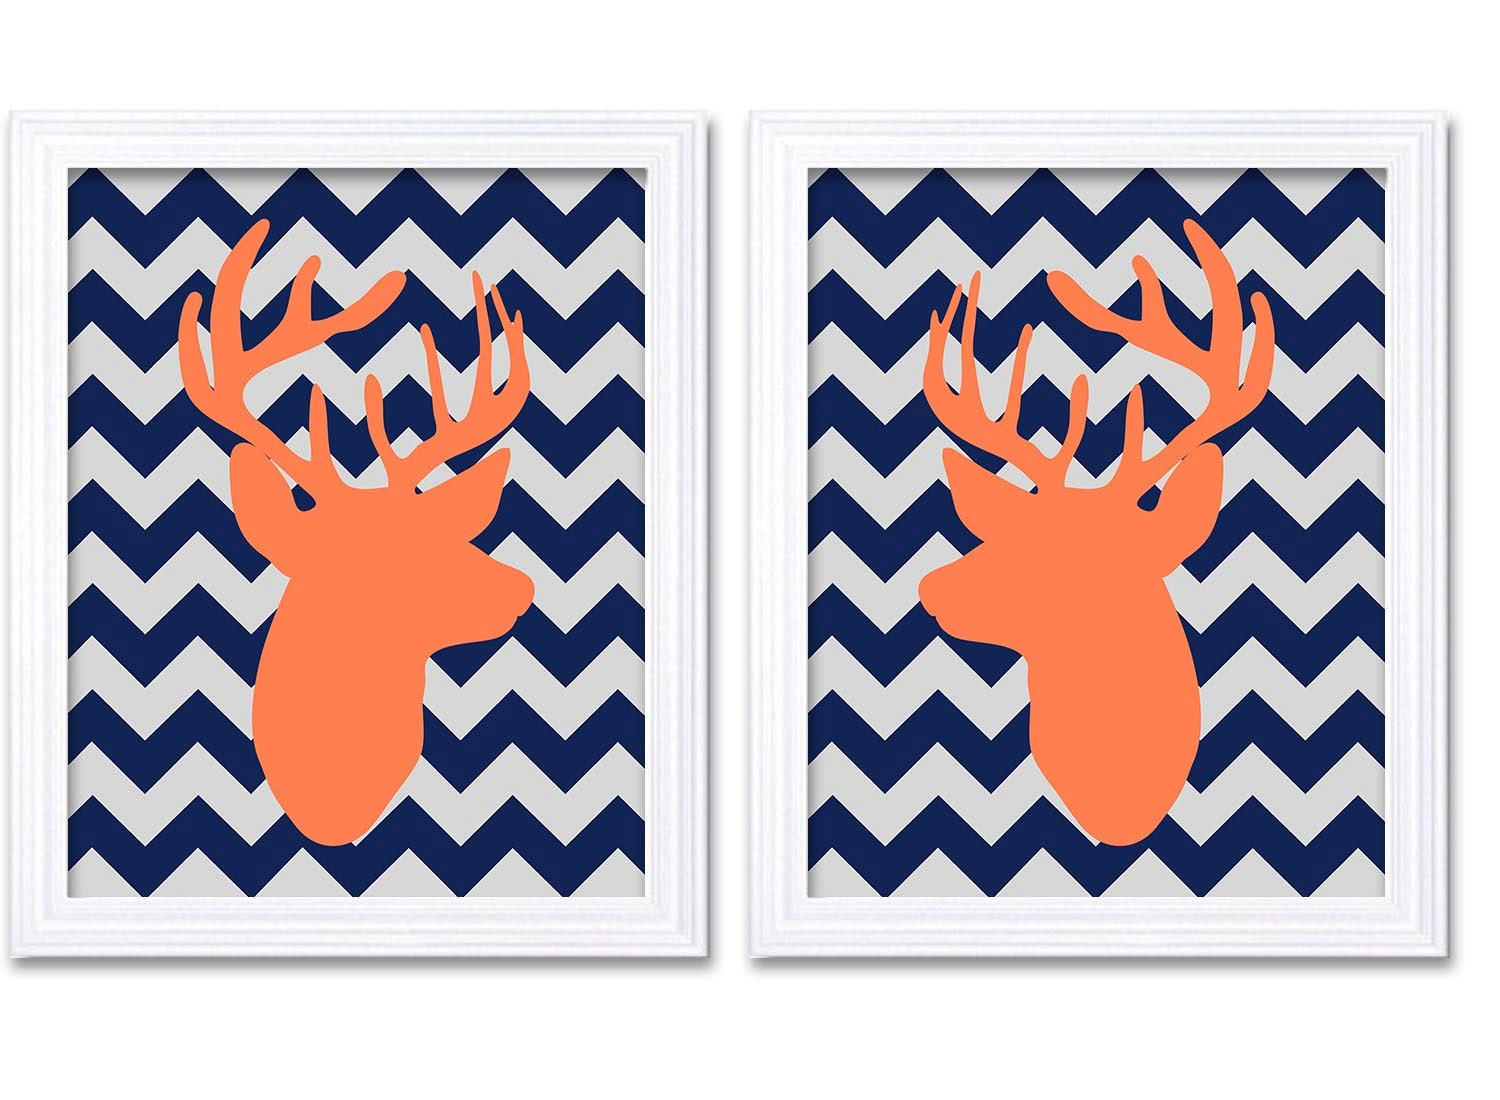 Deer Nursery Art Deer Head Prints Set of 2 Navy Blue Grey Orange Peach Coral Chevron Baby Wall Decor